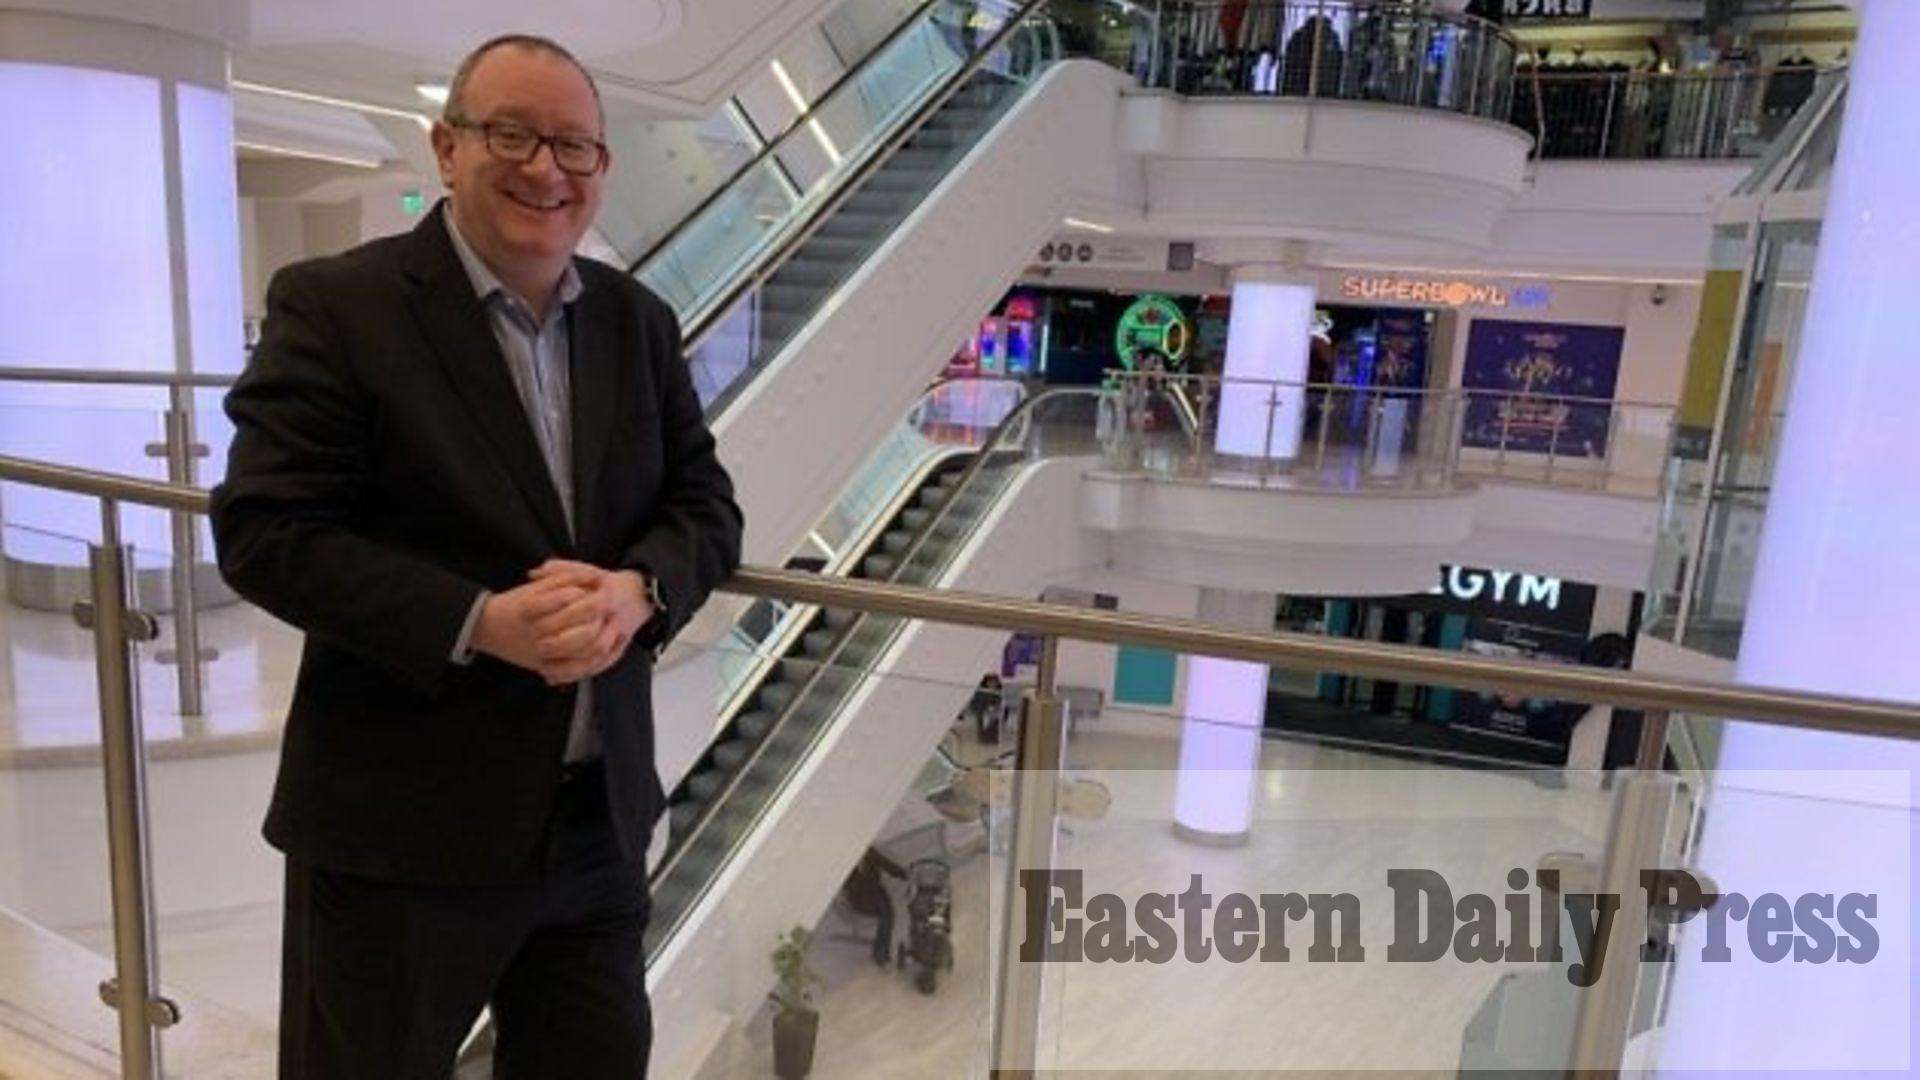 'Don't come': Boss tells shoppers to stay away for now